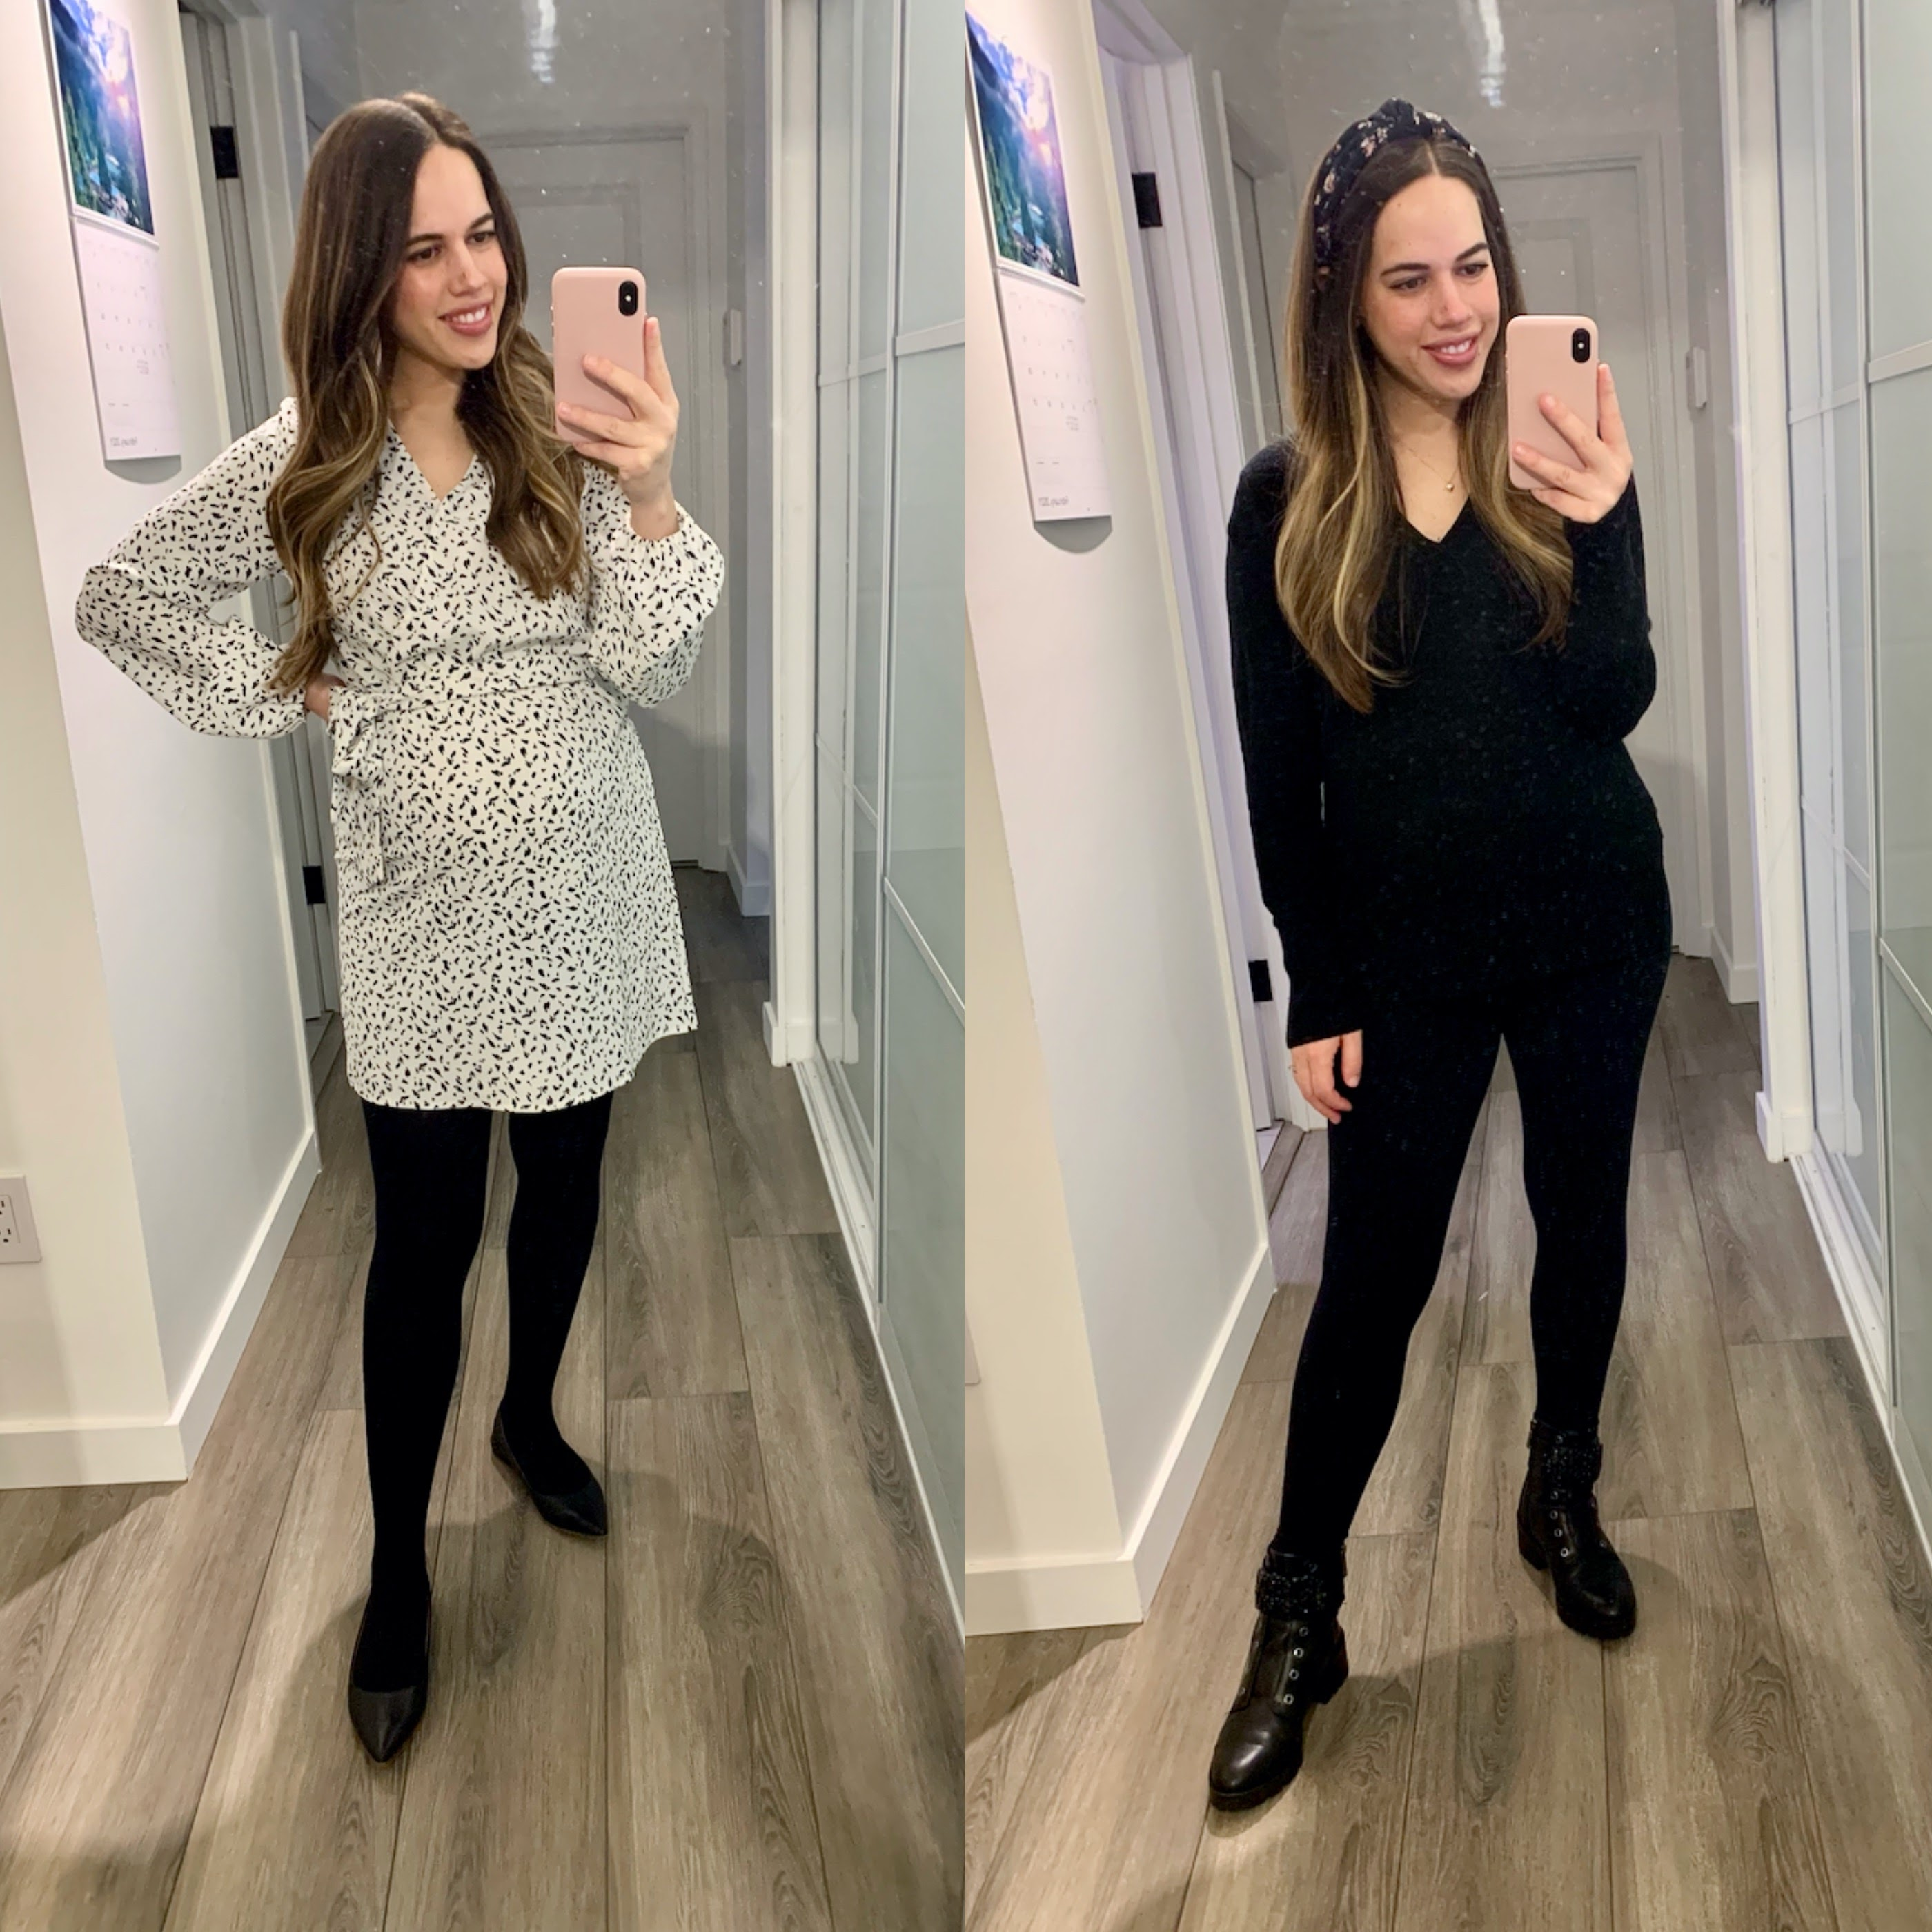 Jules in Flats - What I Wore to Work in February (Business Casual Workwear on a Budget) Week 1